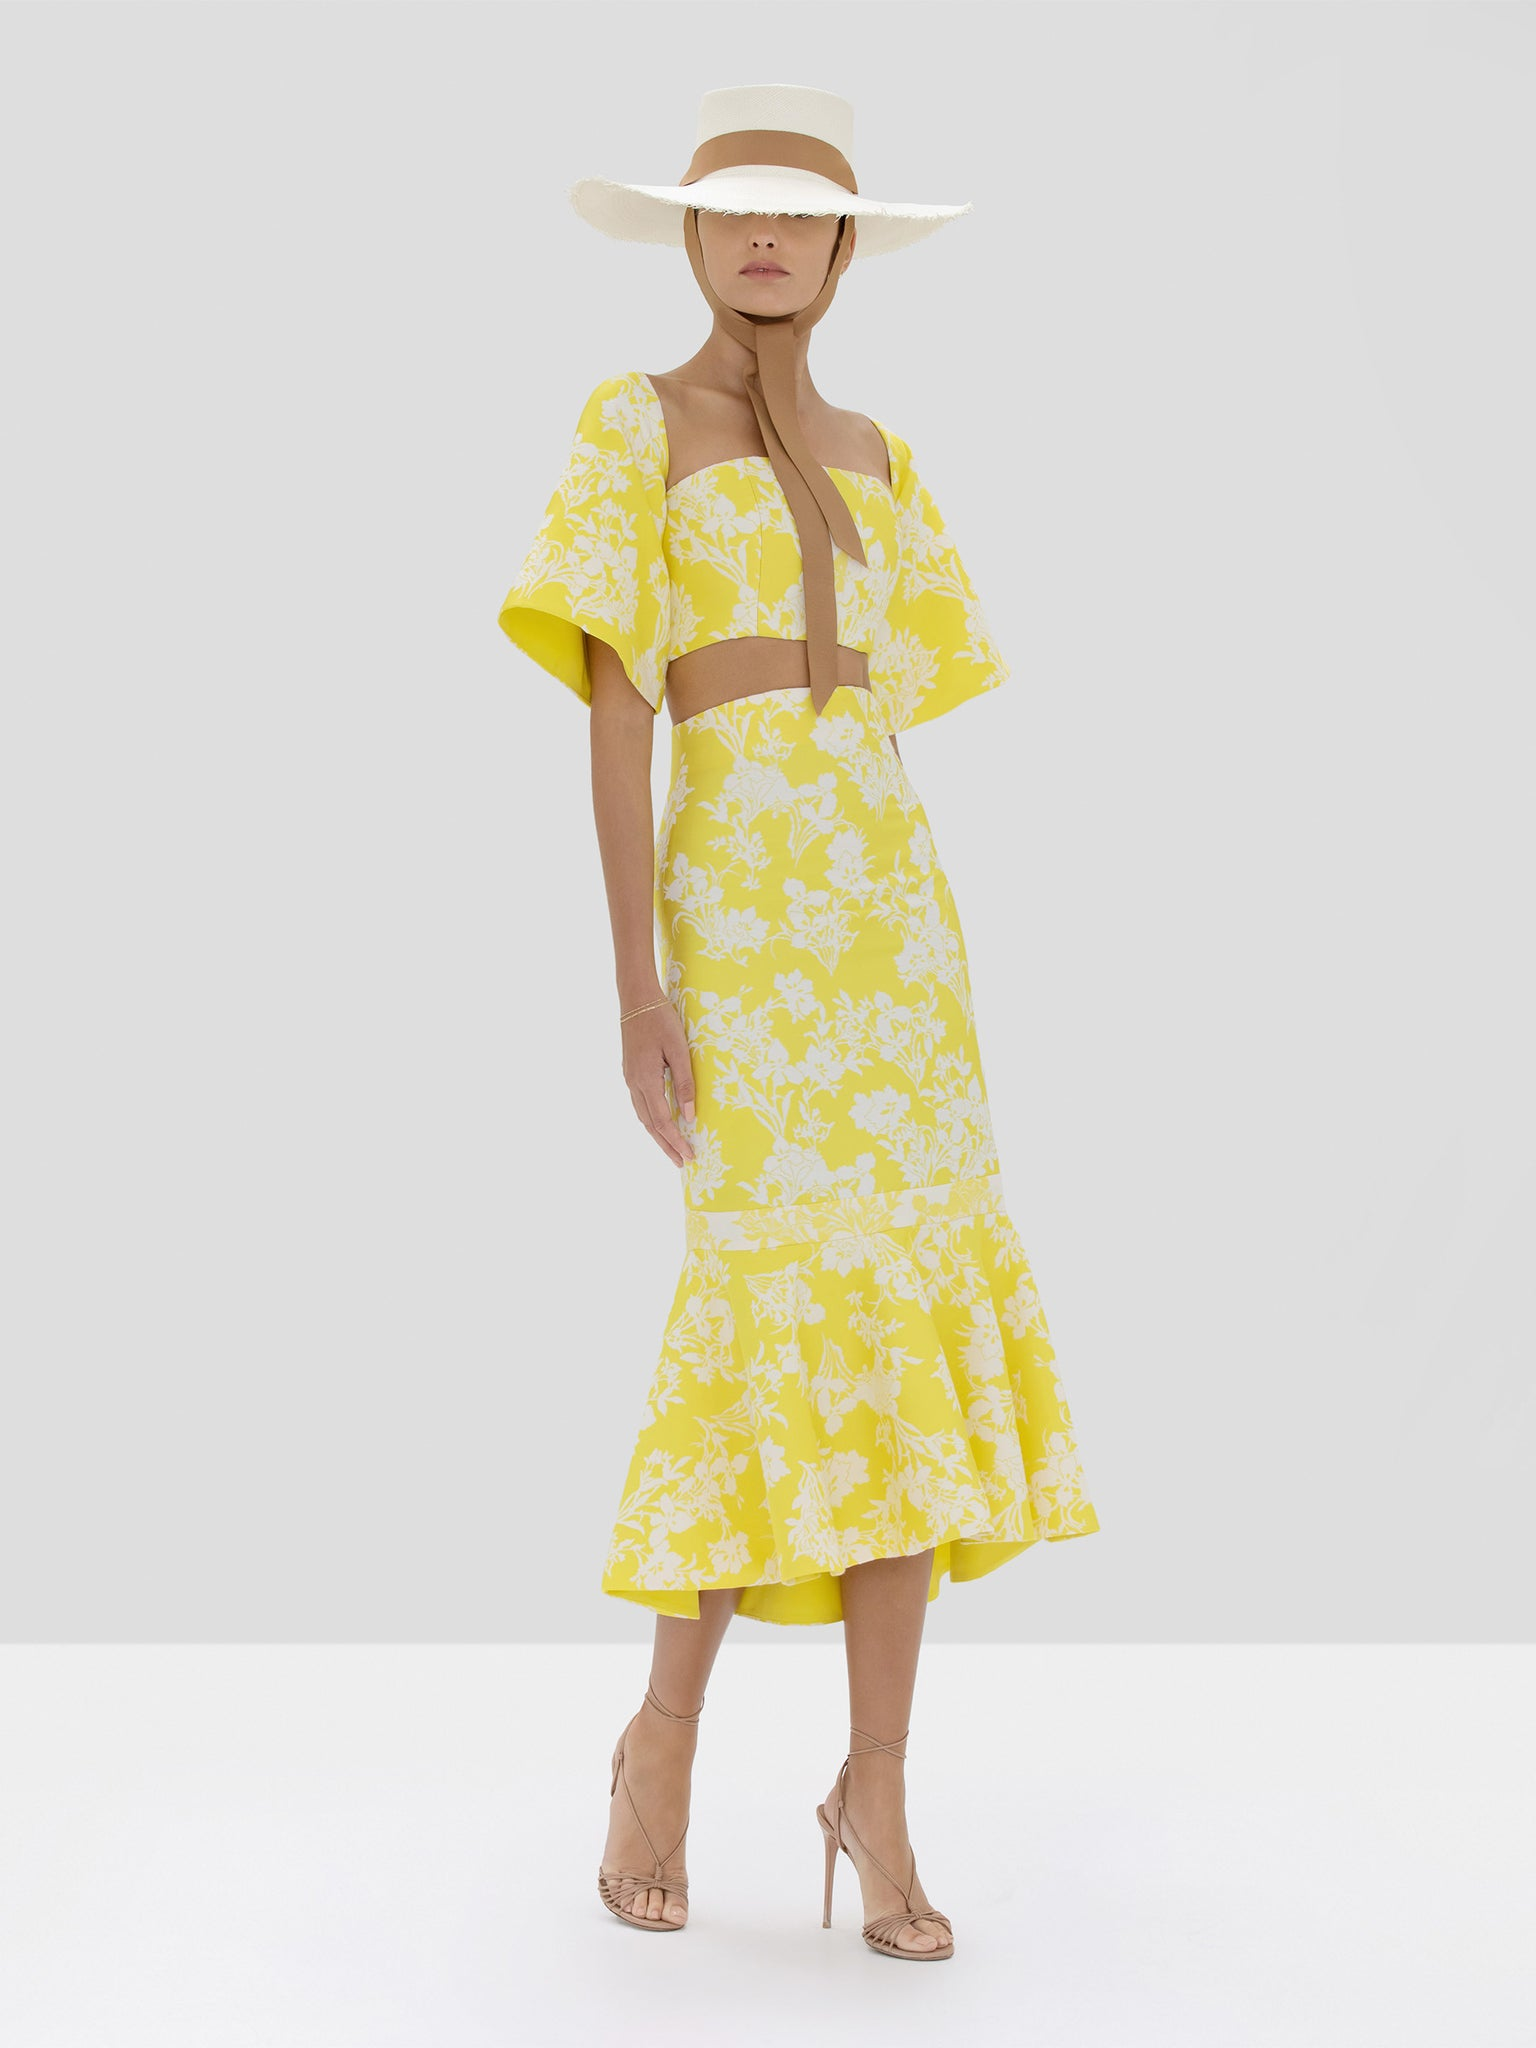 Alexis Oliana Crop Top and Ivorra Skirt in Citrus Jacquard from Spring Summer 2020 Collection